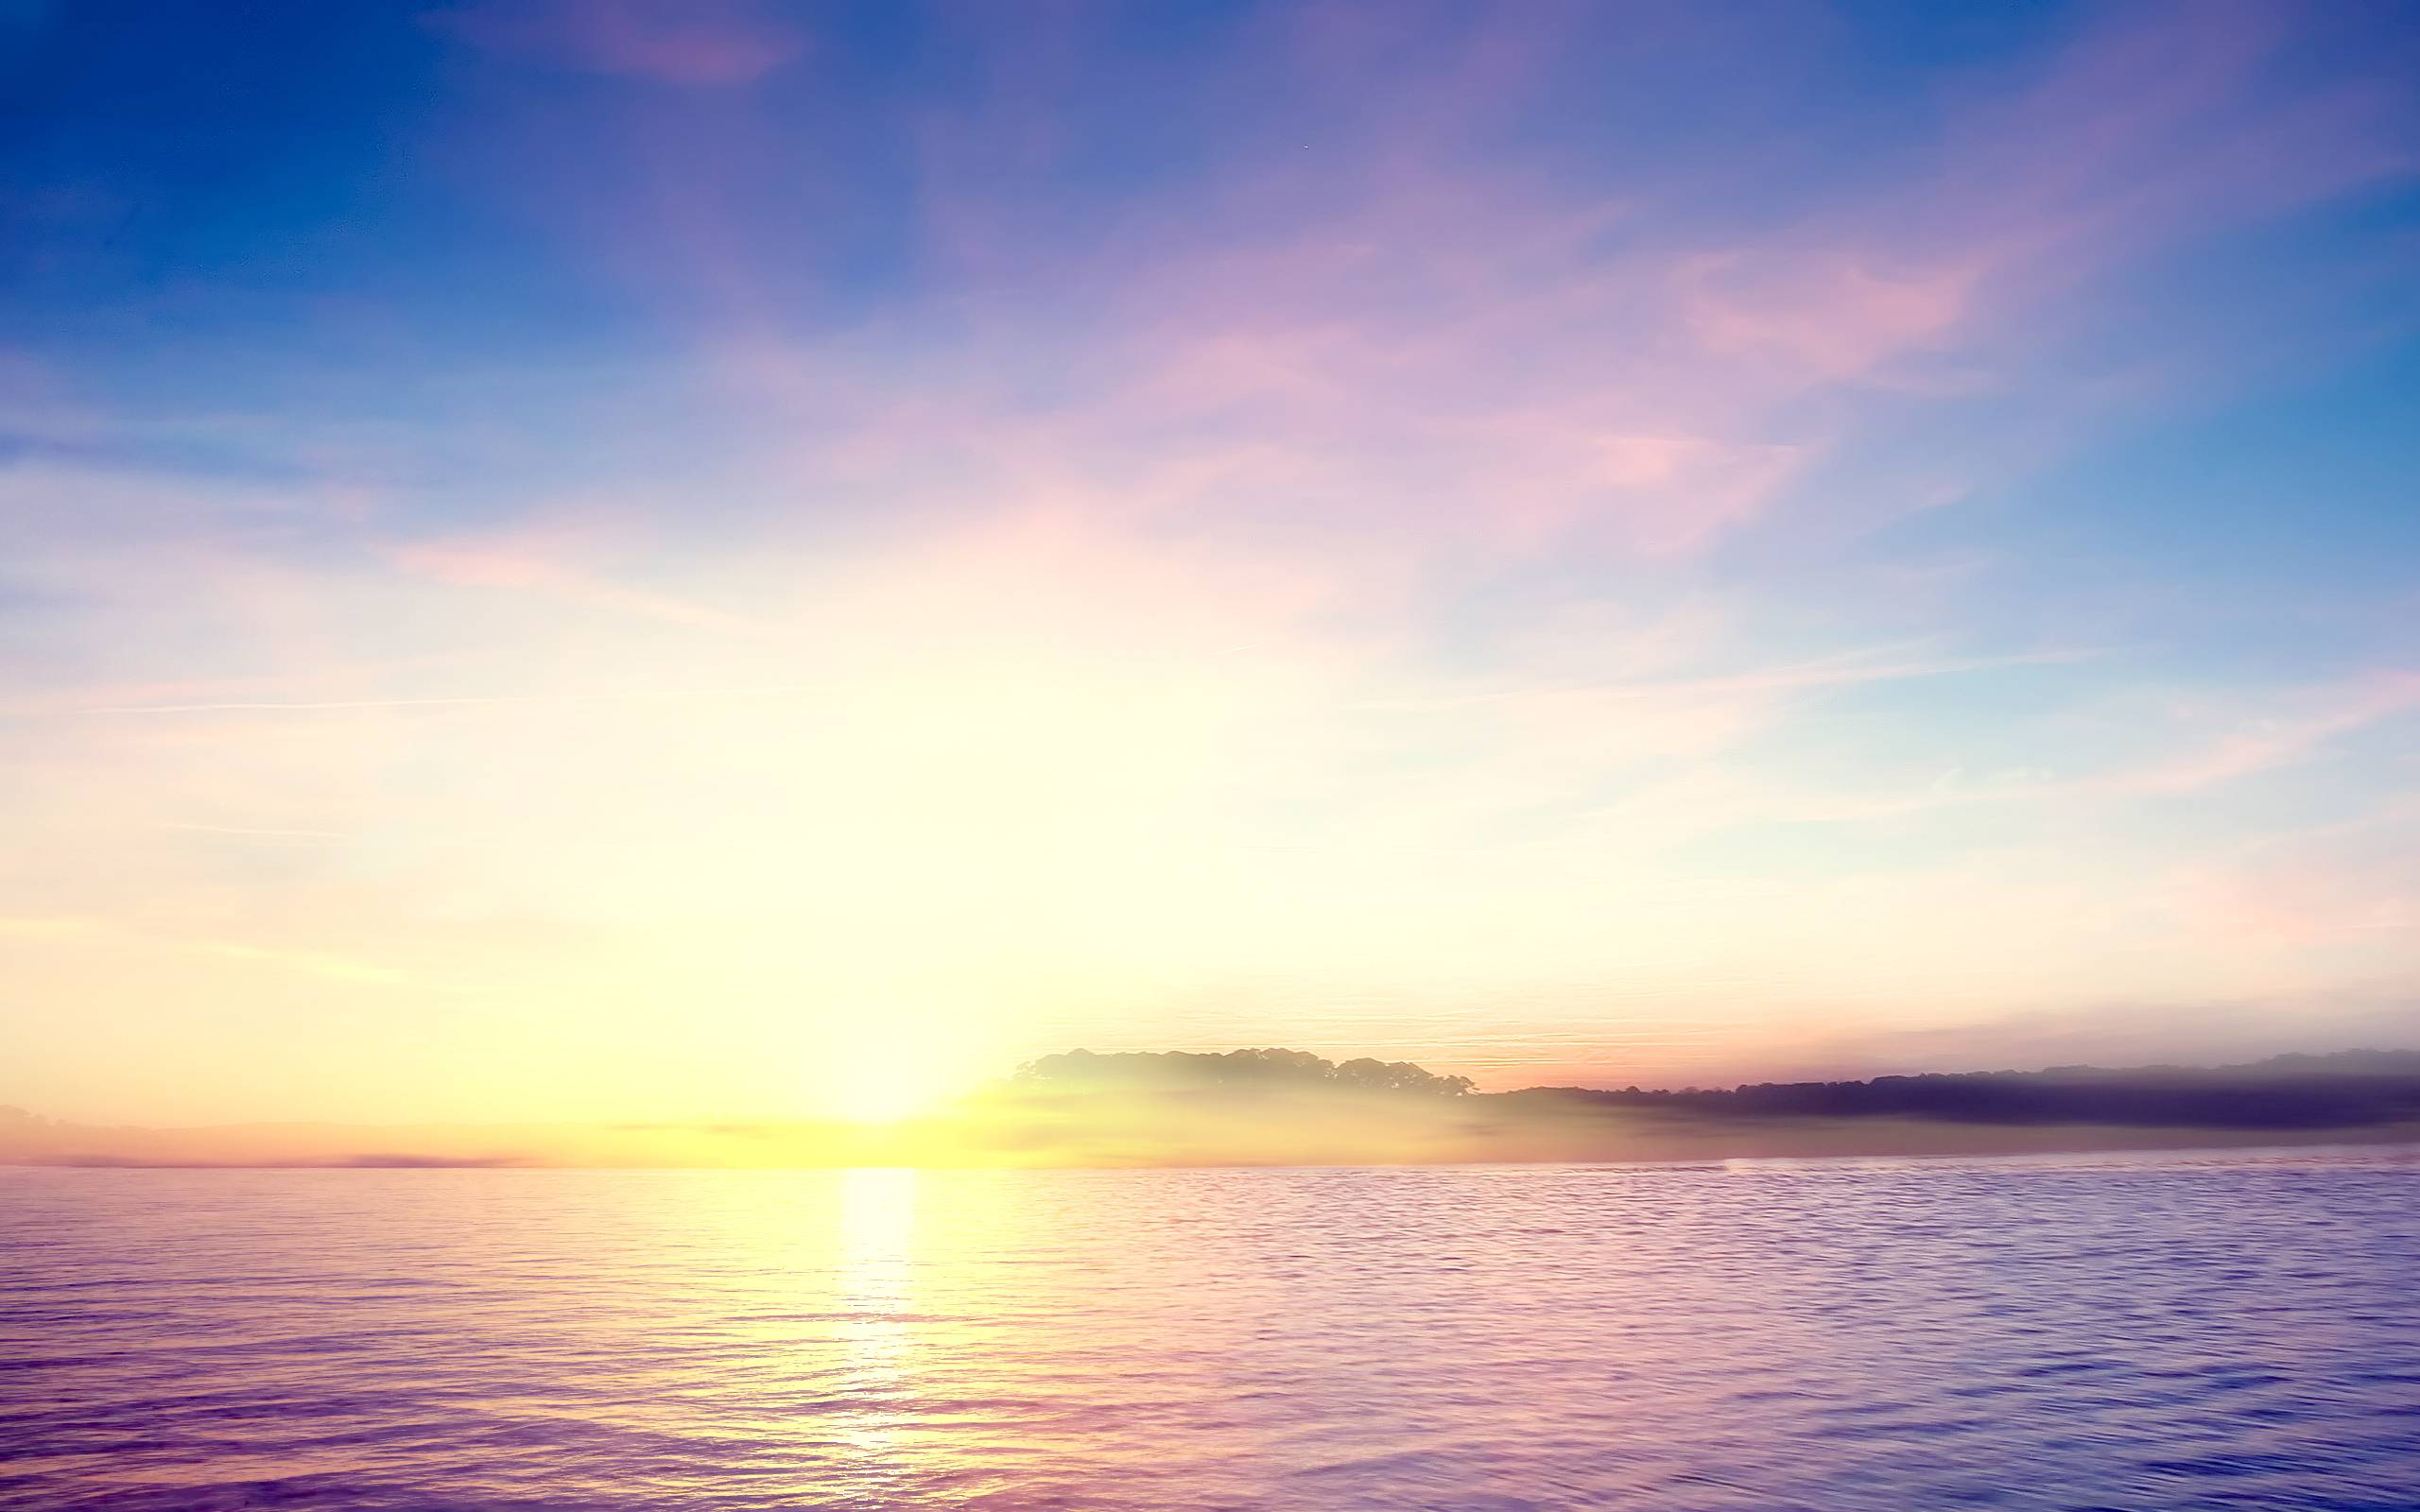 Tropical Island Sunset Wallpapers 2560x1600